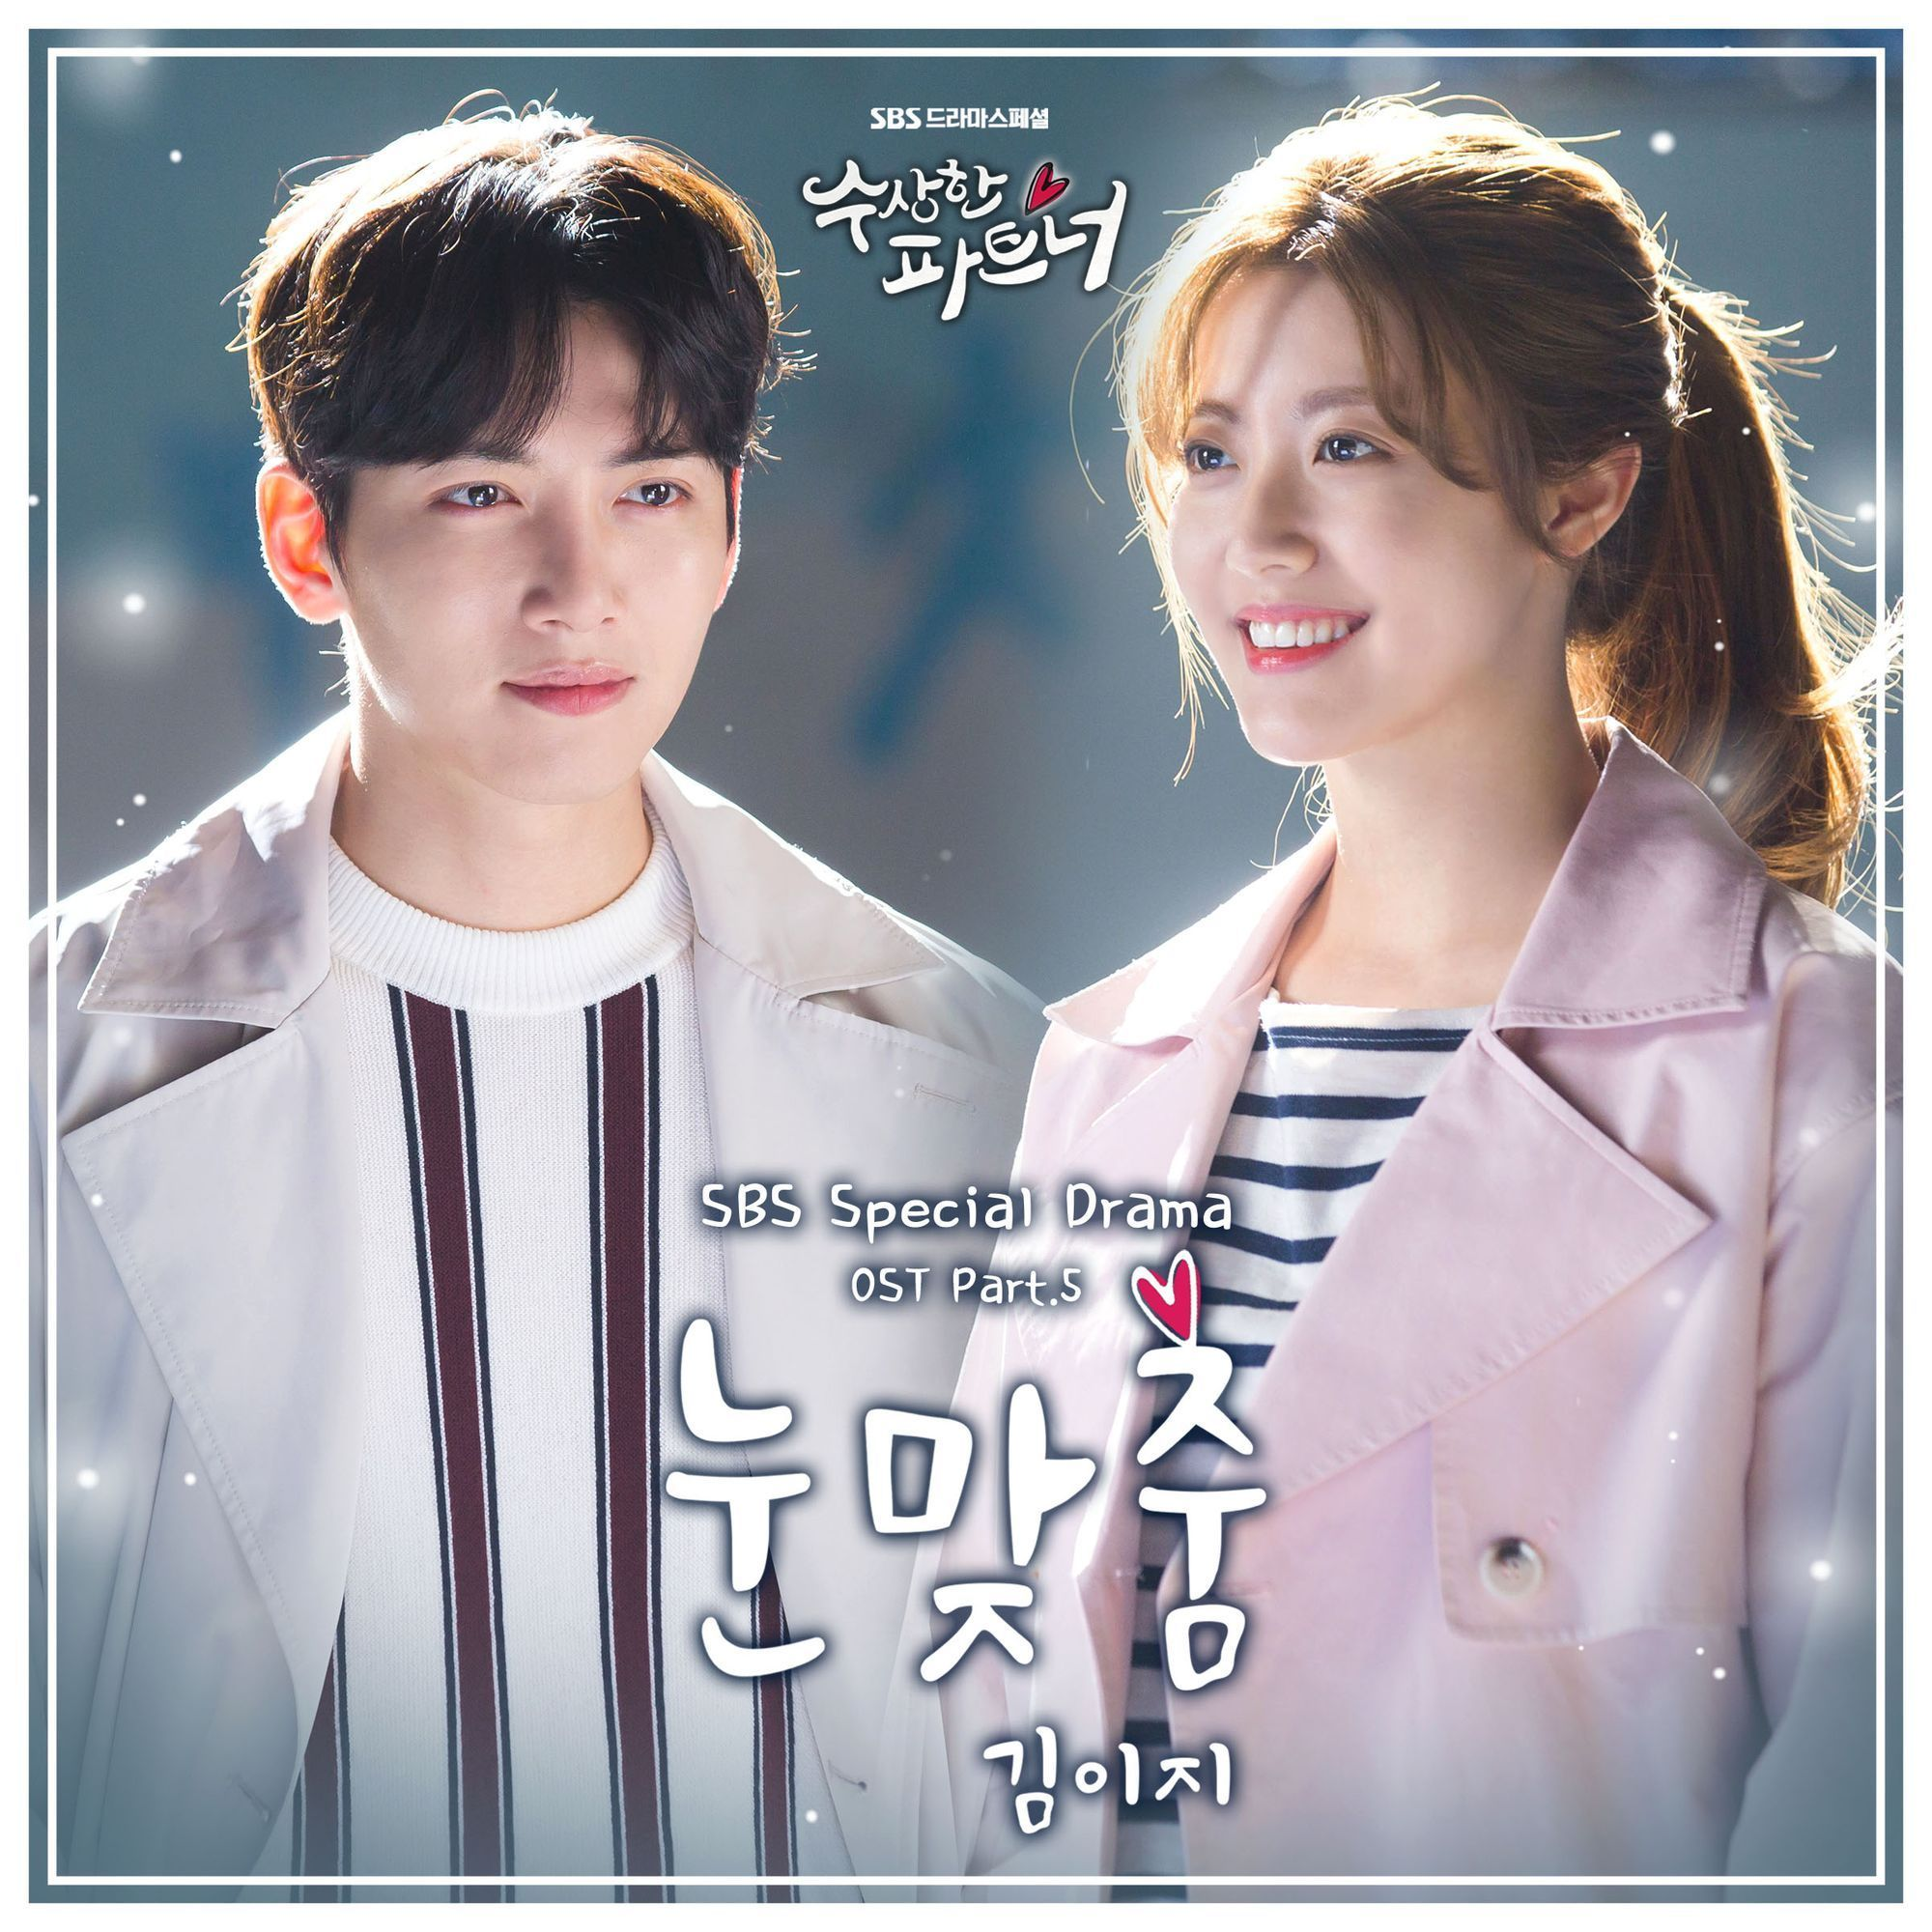 Kim Ez (Ggothjam Project) – Suspicious Partner OST Part.5 (2017.06.